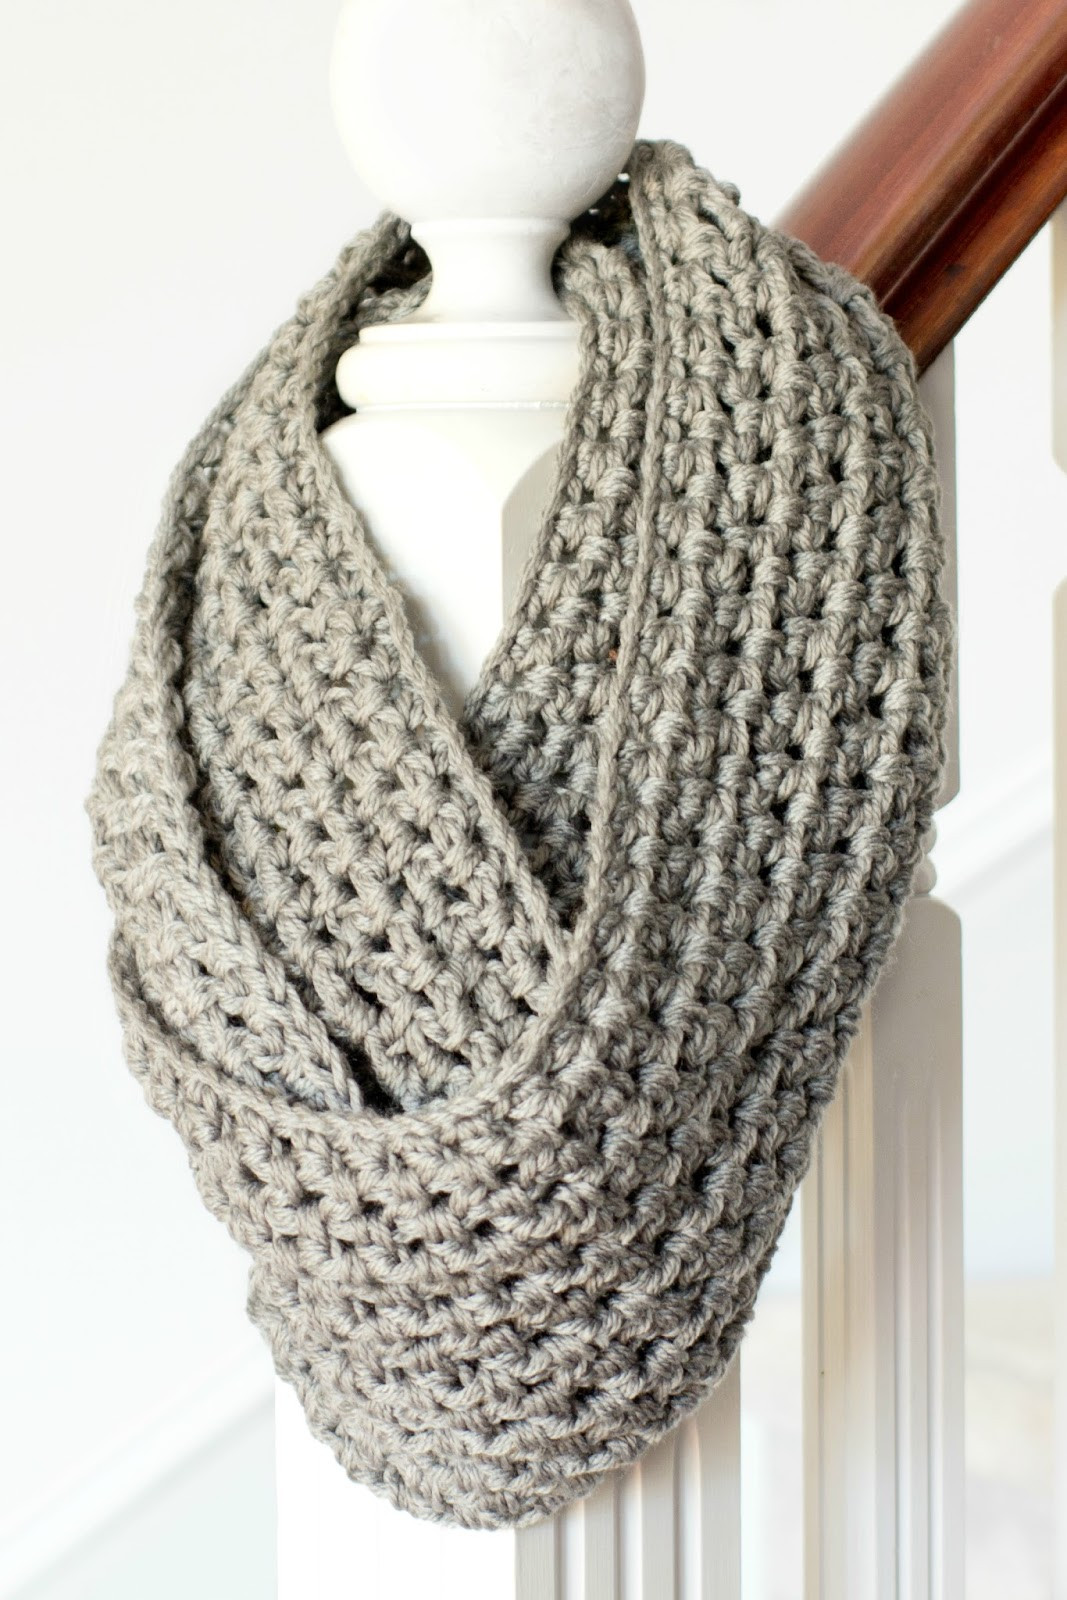 Crochet Scarves Patterns Inspirational 42 Fun and Cozy Diy Scarves Crafts to Make Of Adorable 49 Models Crochet Scarves Patterns